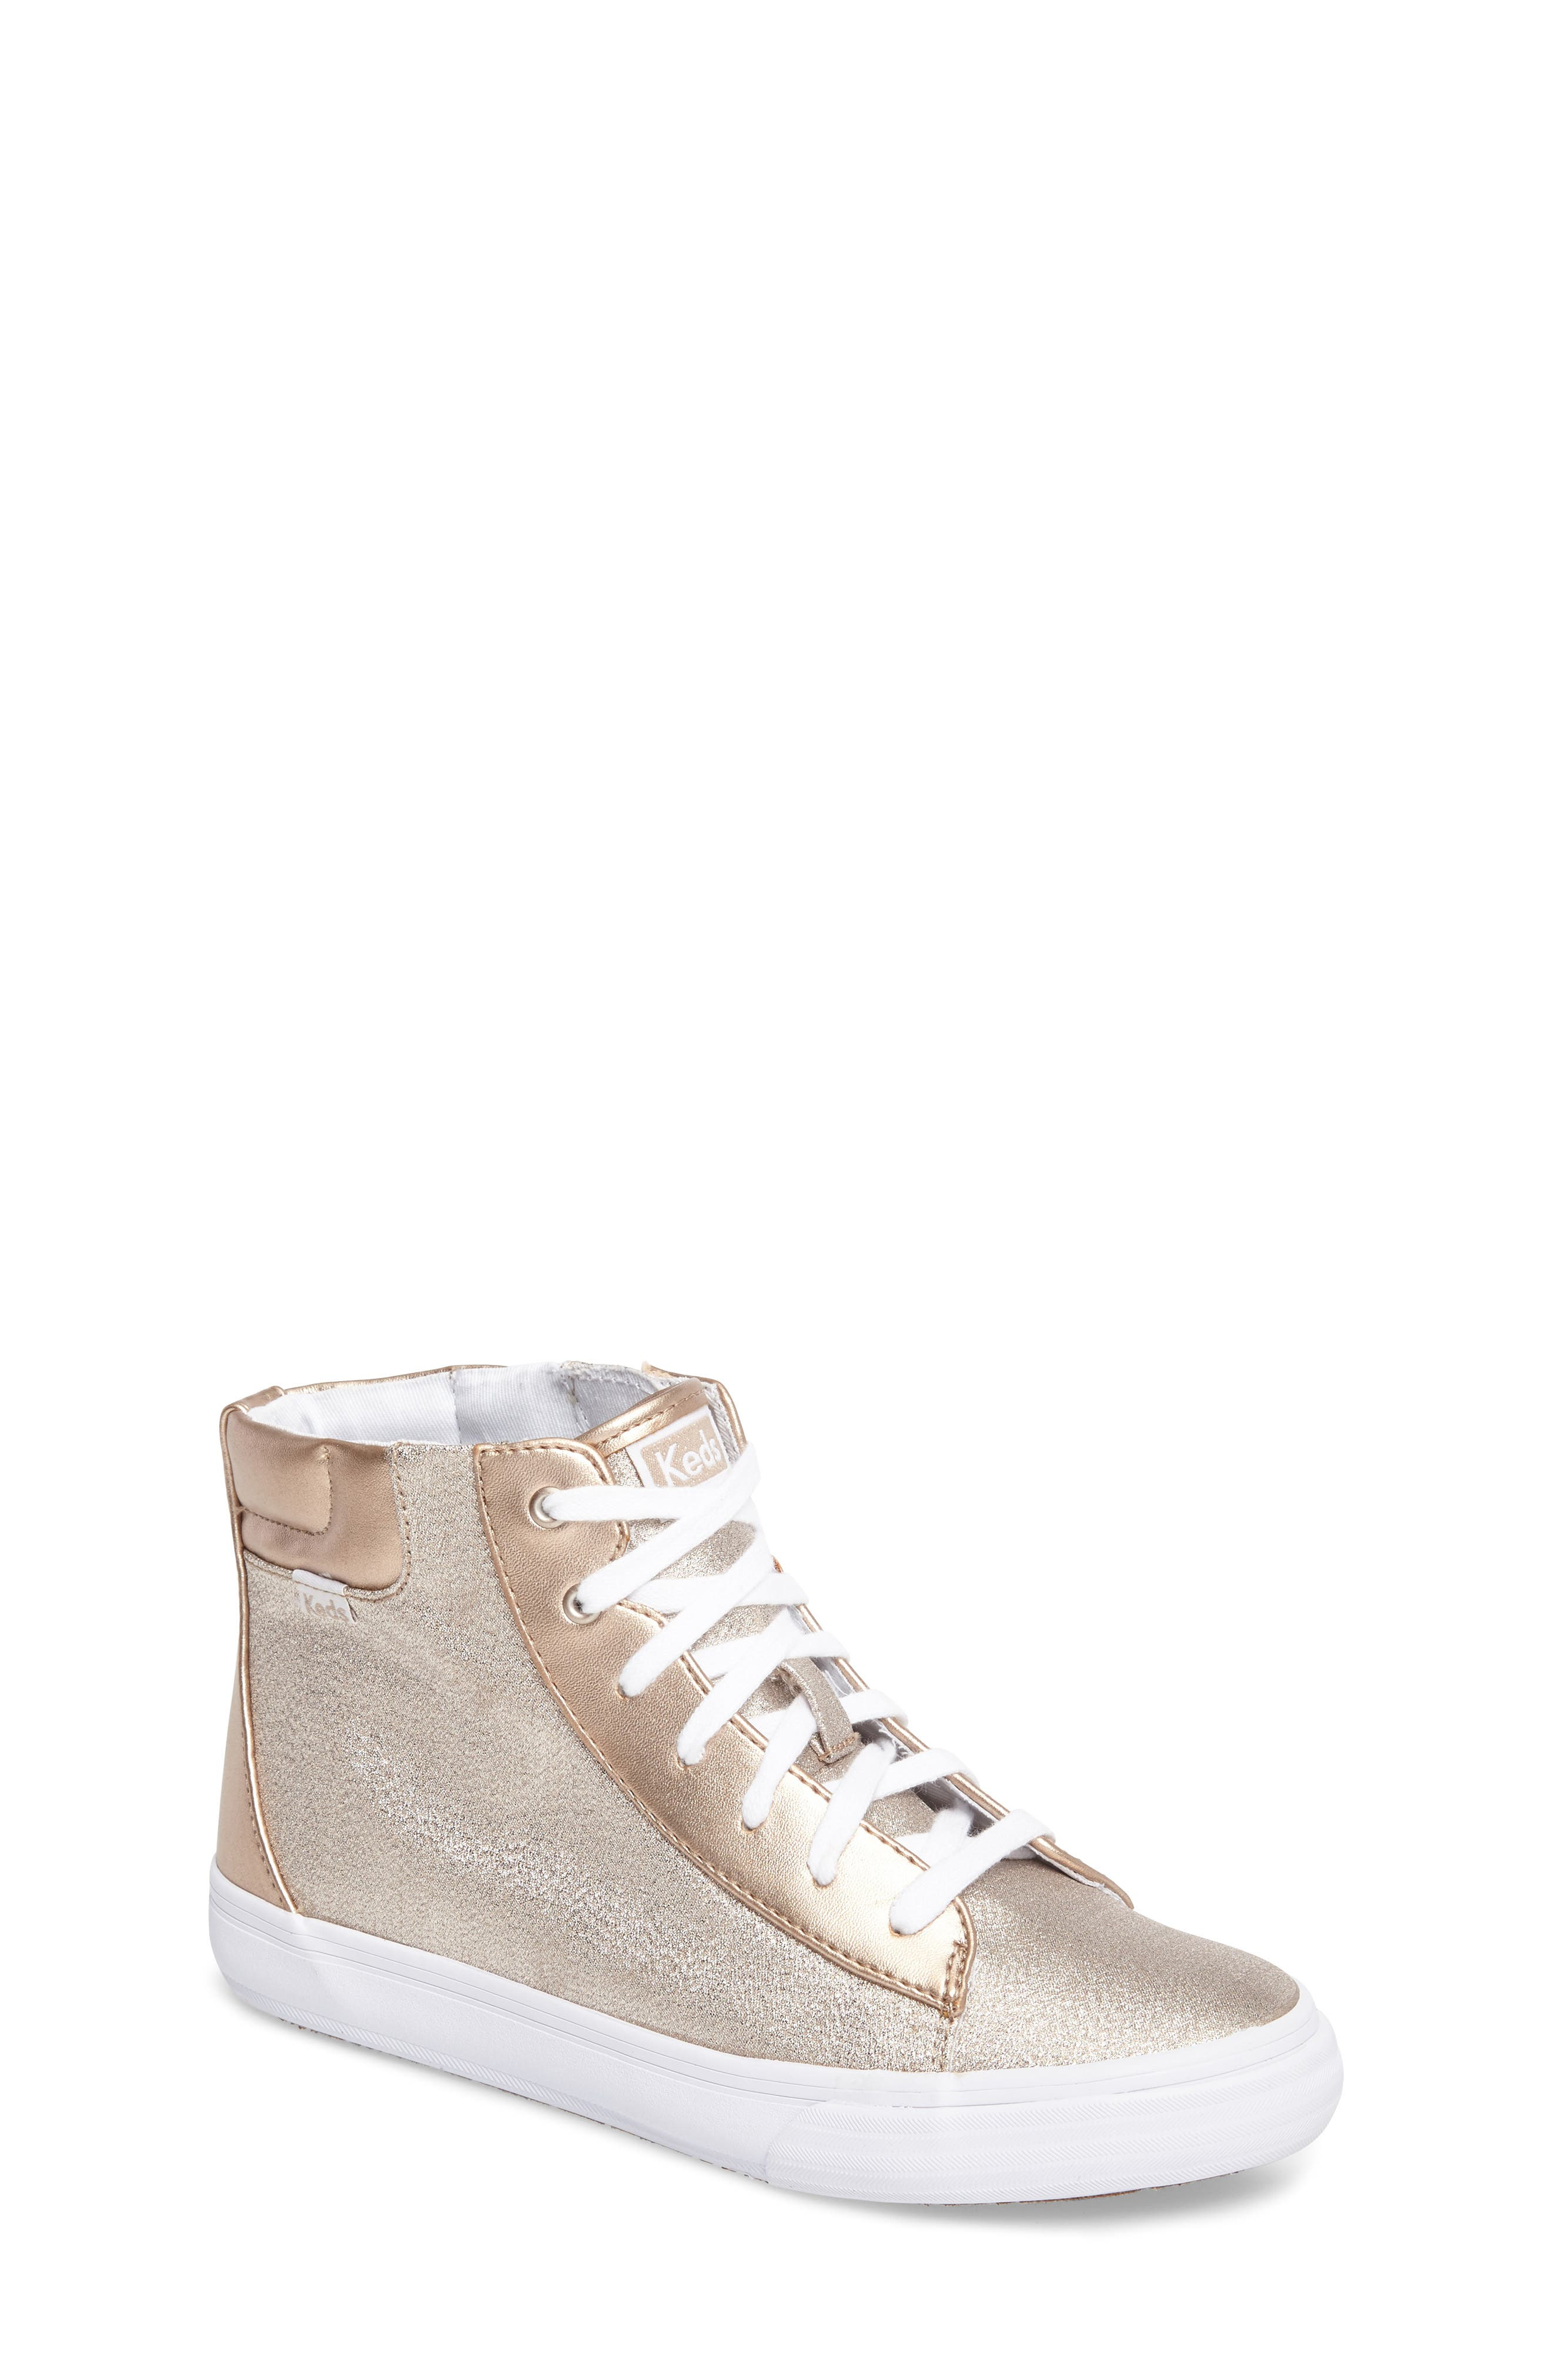 Double Up High Top Sneaker,                             Main thumbnail 1, color,                             220